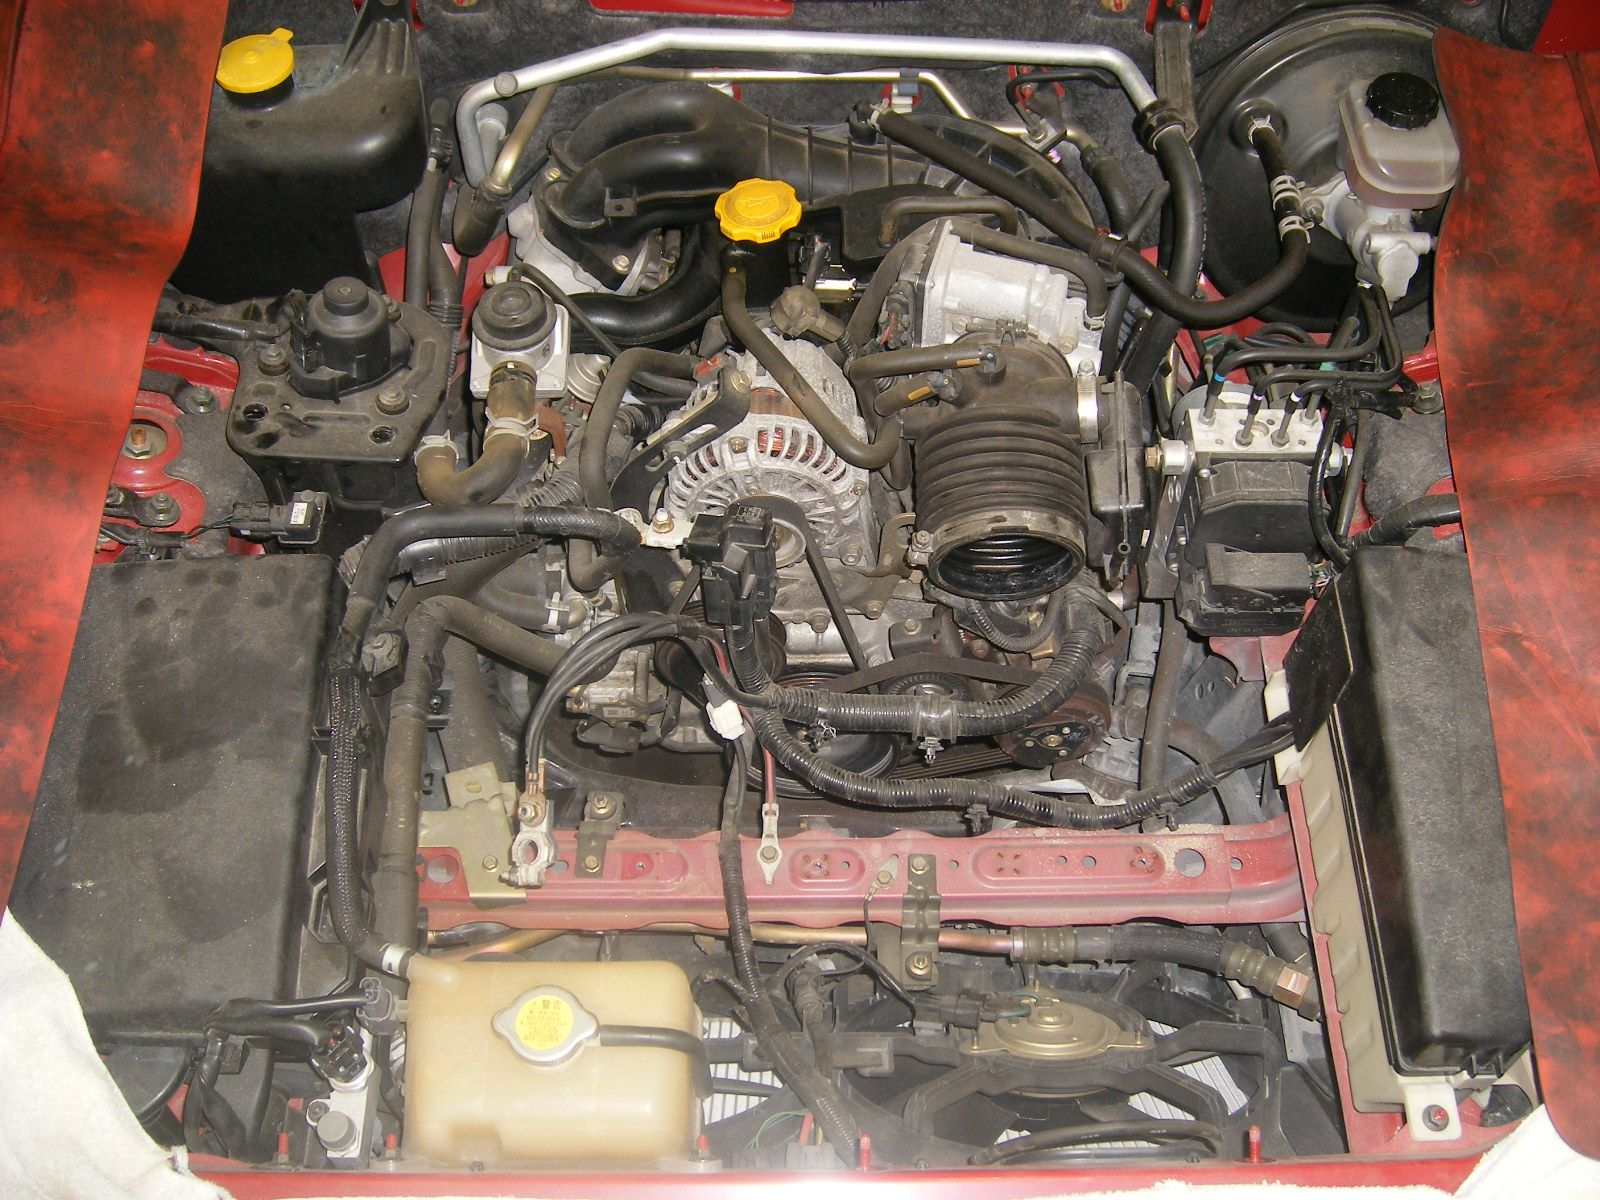 how to lift the engine out of the engine compartment mazda pinterest com mazda engine diagram [ 1600 x 1200 Pixel ]